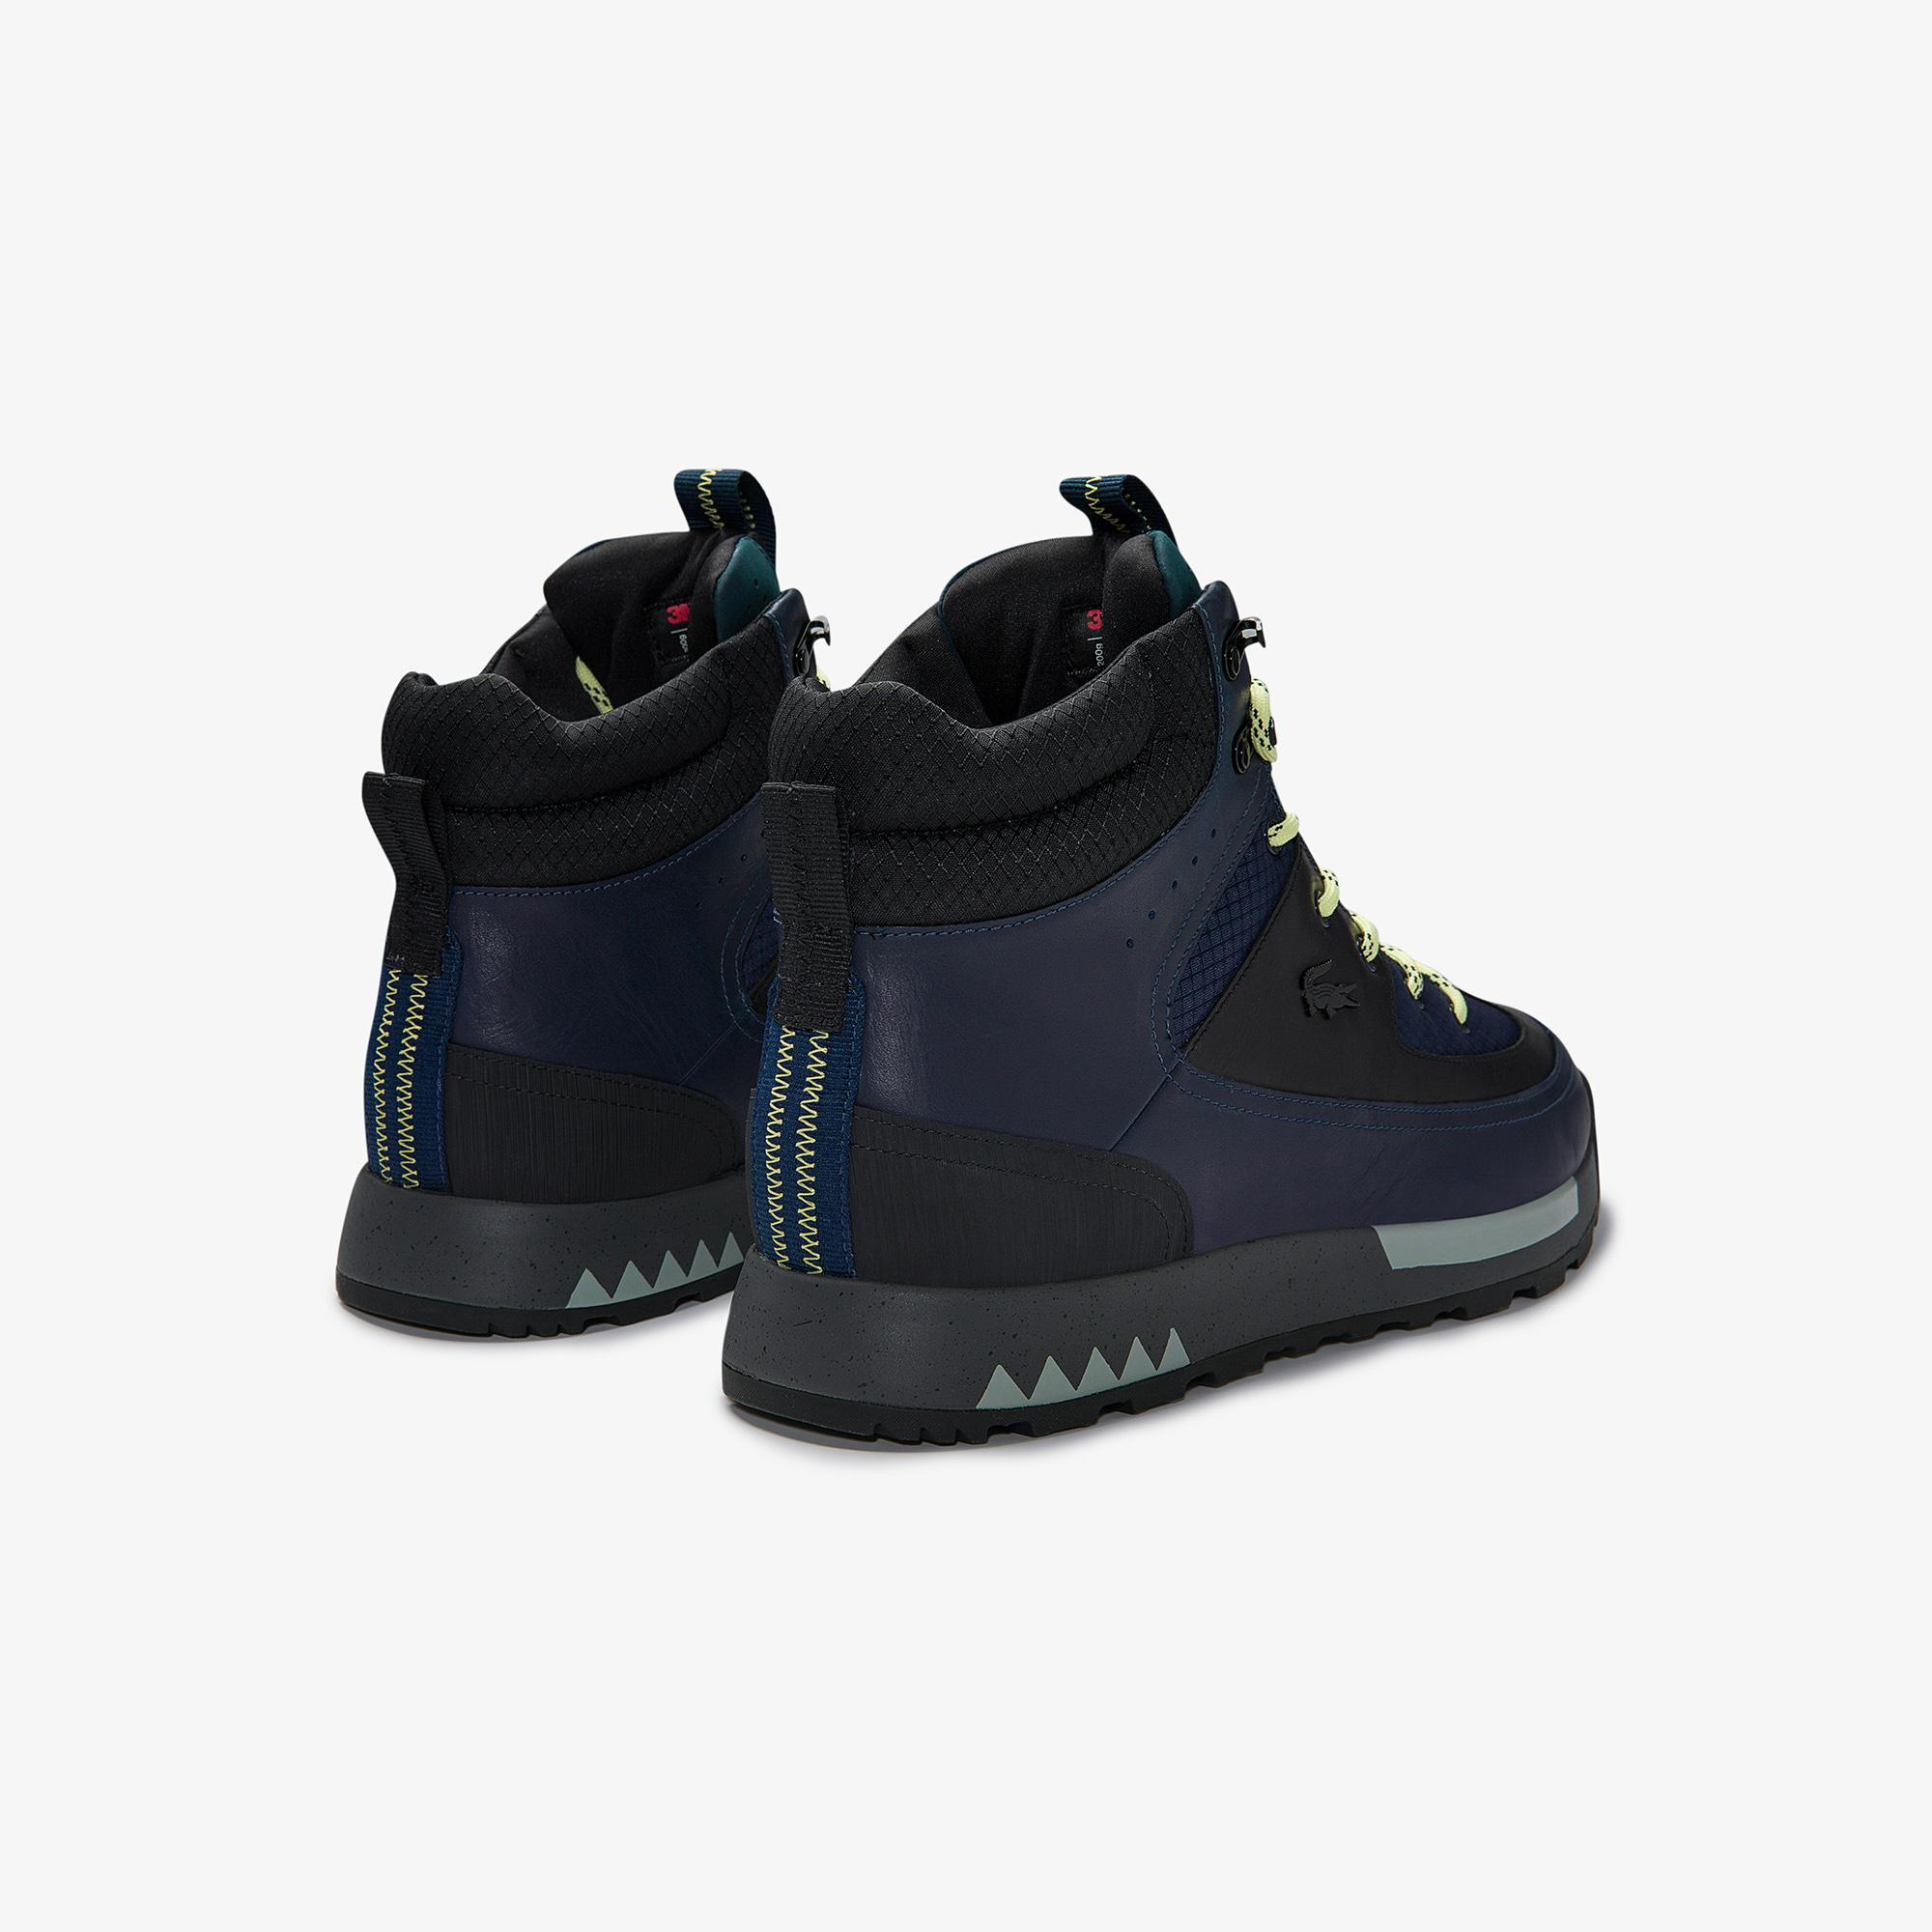 Lacoste Men's Urban Breaker Leather and Textile Boots